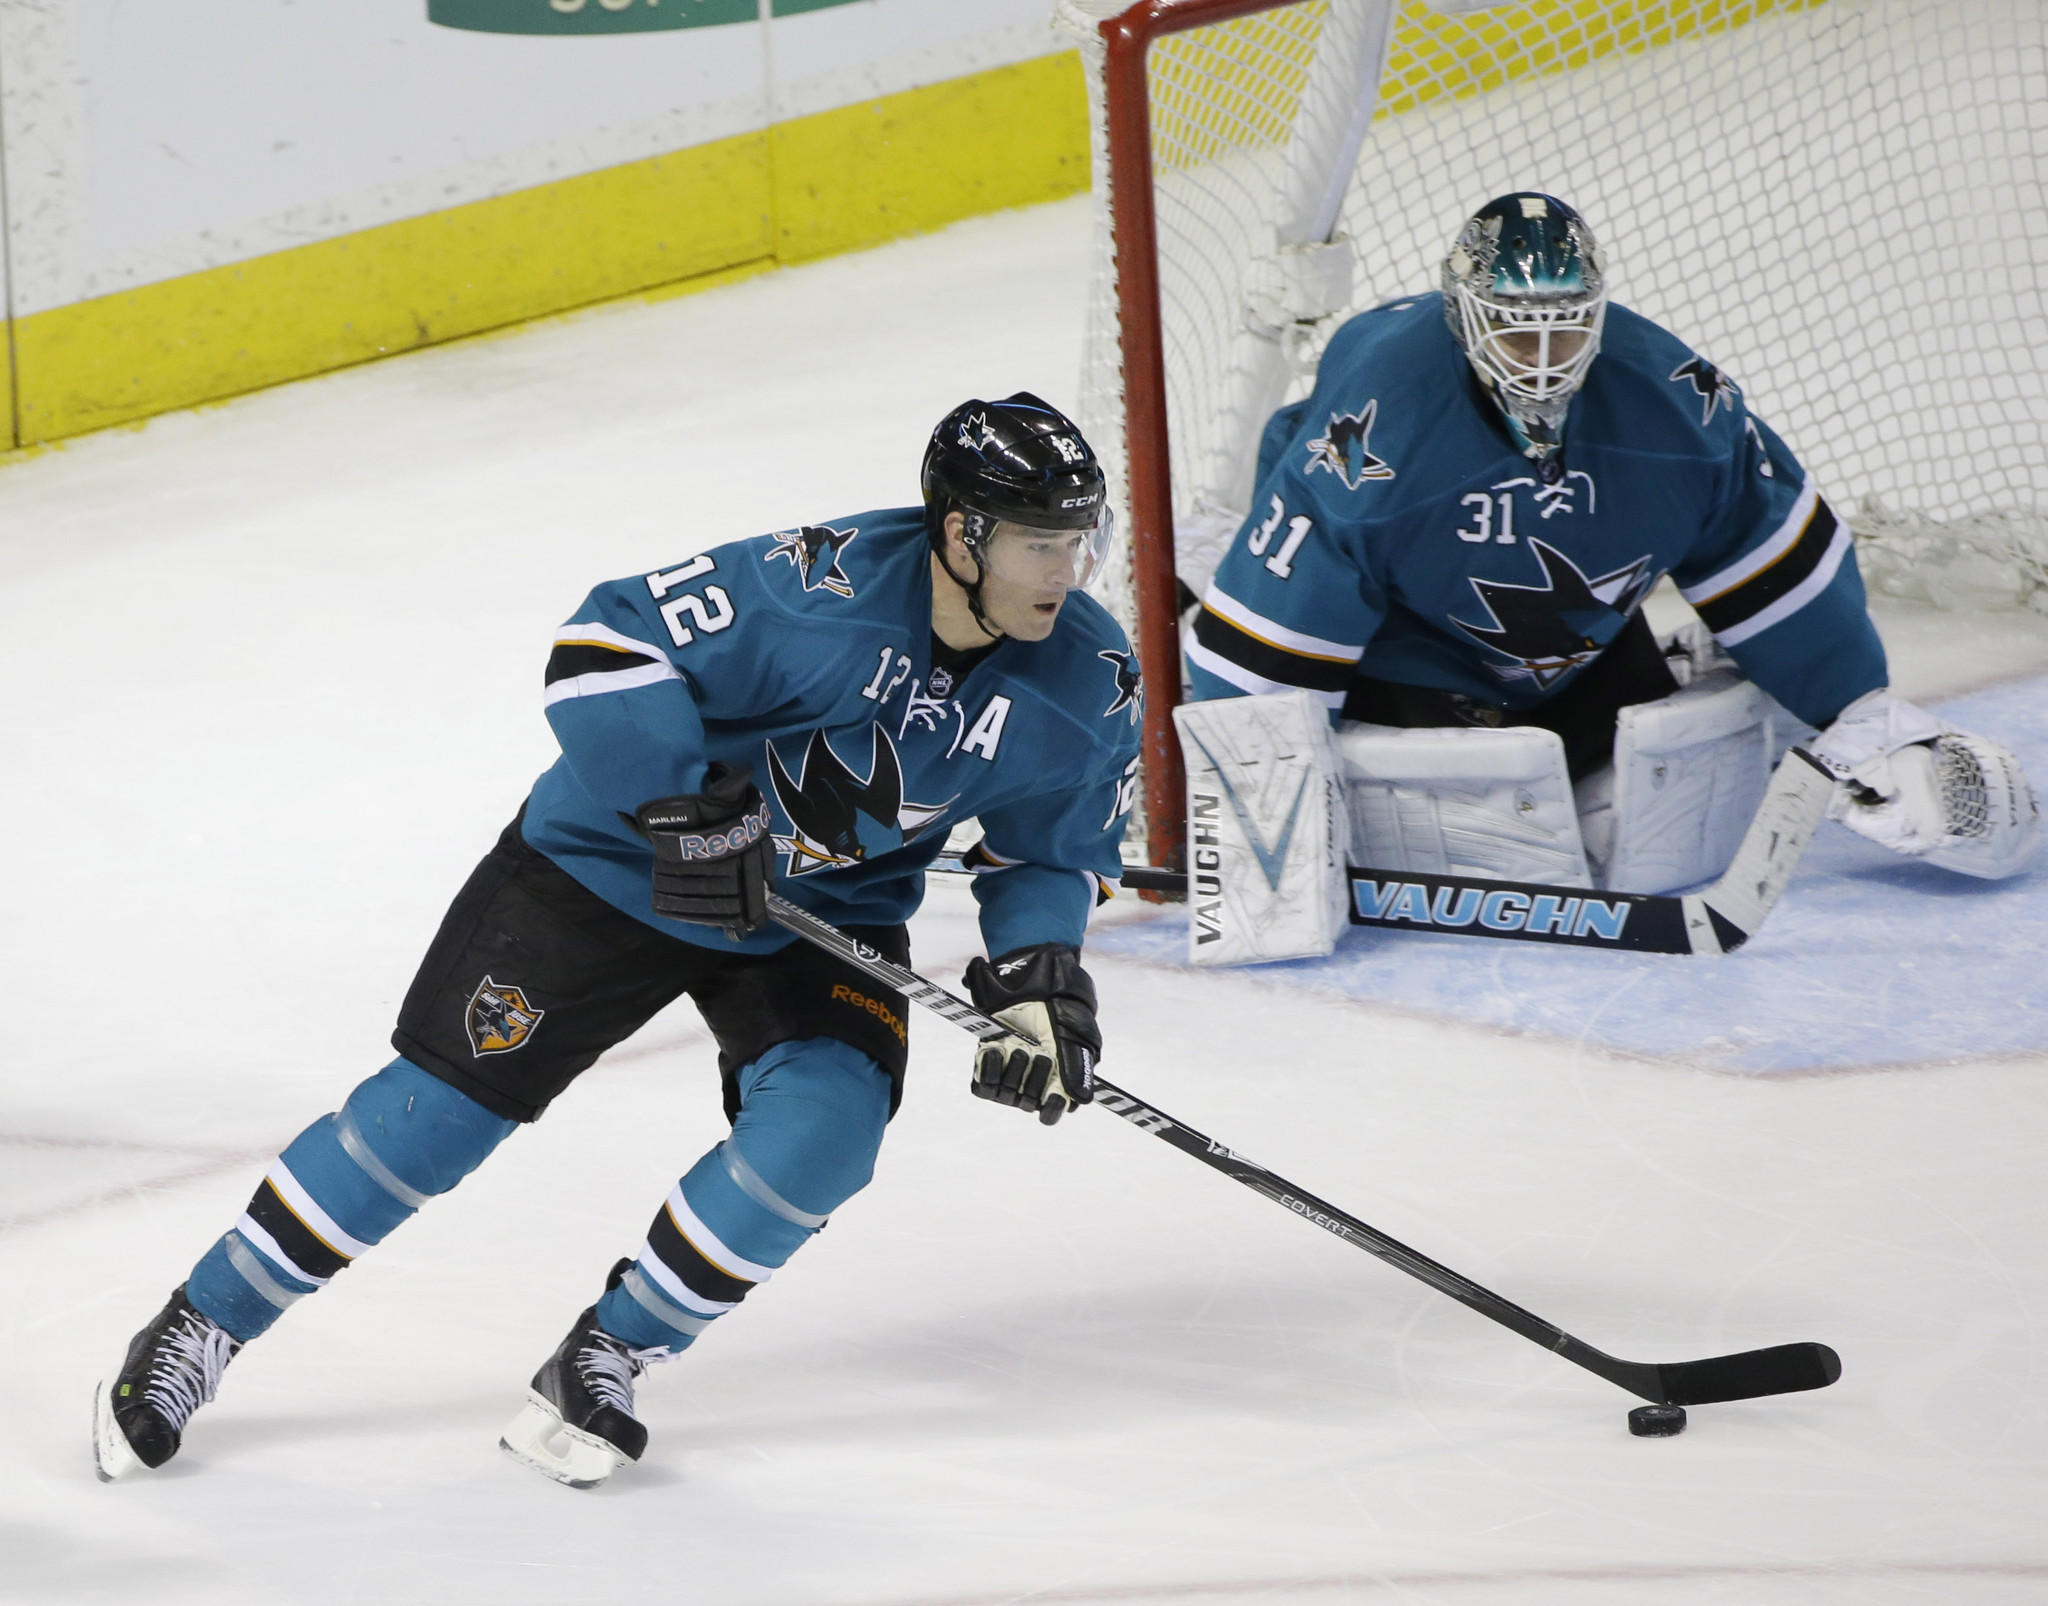 San Jose's Patrick Marleau is one of the finalists for the Lady Byng Trophy.